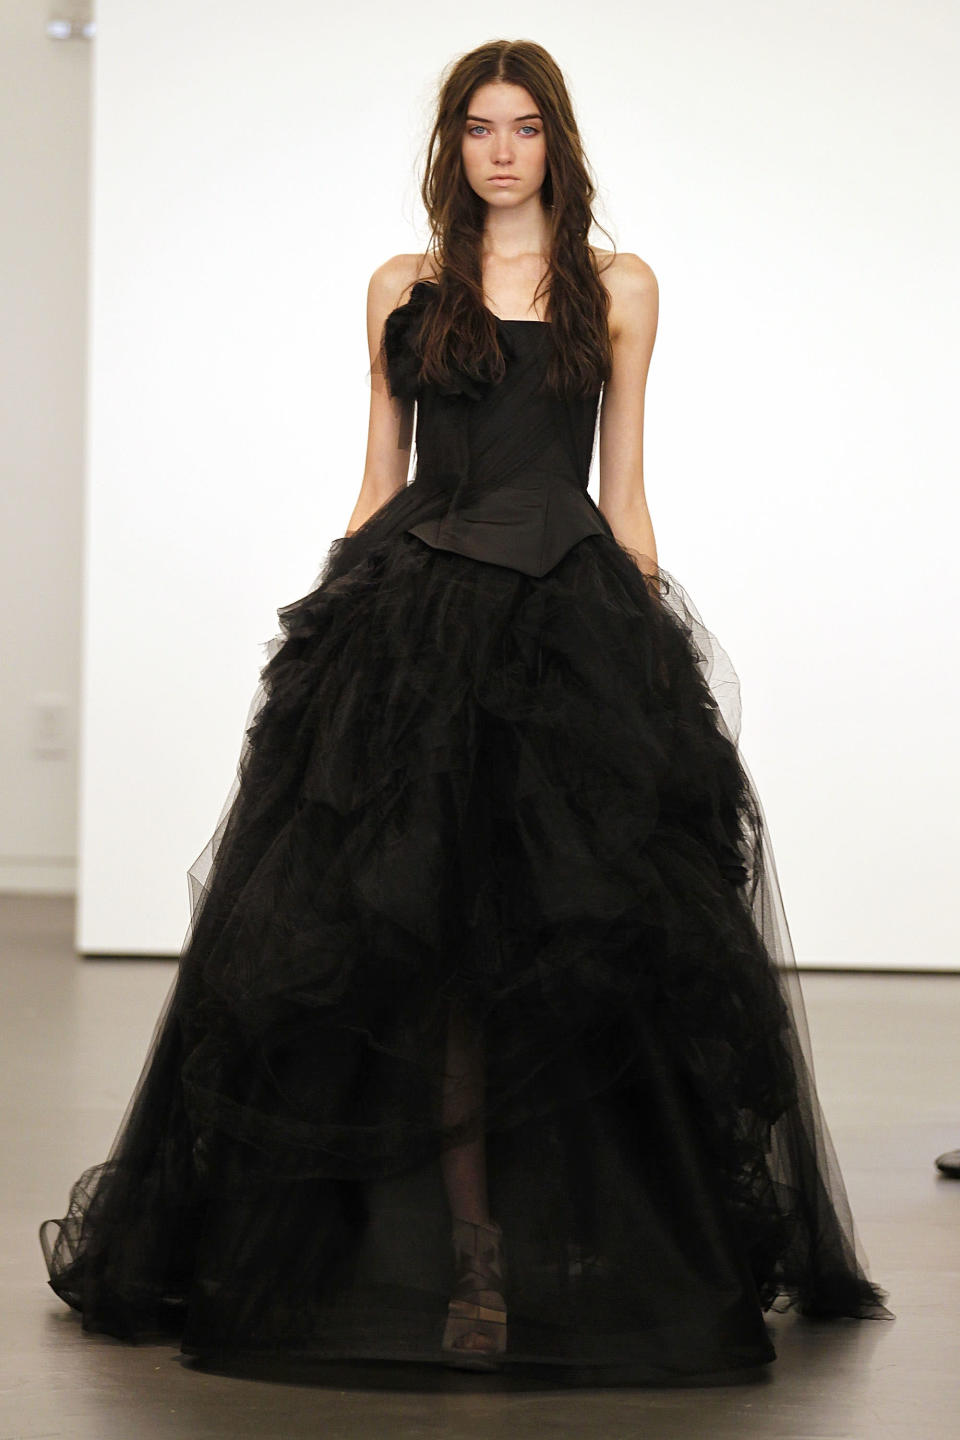 "<div class=""caption-credit"">Photo by: Getty</div><p> Vera Wang, 2011. A gown from the runway show that started it all. The designer included 15 black dresses. </p> <p> Also on Shine: </p> <p> <a href=""http://yhoo.it/16jDHWm"" rel=""nofollow noopener"" target=""_blank"" data-ylk=""slk:This Couple Really Loves Disney: Wedding Photos"" class=""link rapid-noclick-resp"">This Couple Really Loves Disney: Wedding Photos</a> </p> <p> <a href=""http://yhoo.it/10mz5hr"" rel=""nofollow noopener"" target=""_blank"" data-ylk=""slk:Wedding Dress Trends for 2013"" class=""link rapid-noclick-resp"">Wedding Dress Trends for 2013</a> </p> <p> <a href=""http://yhoo.it/16jDHWm"" rel=""nofollow noopener"" target=""_blank"" data-ylk=""slk:Wedding Dresses: Short, Beachy, Affordable Styles"" class=""link rapid-noclick-resp"">Wedding Dresses: Short, Beachy, Affordable Styles</a> </p>"